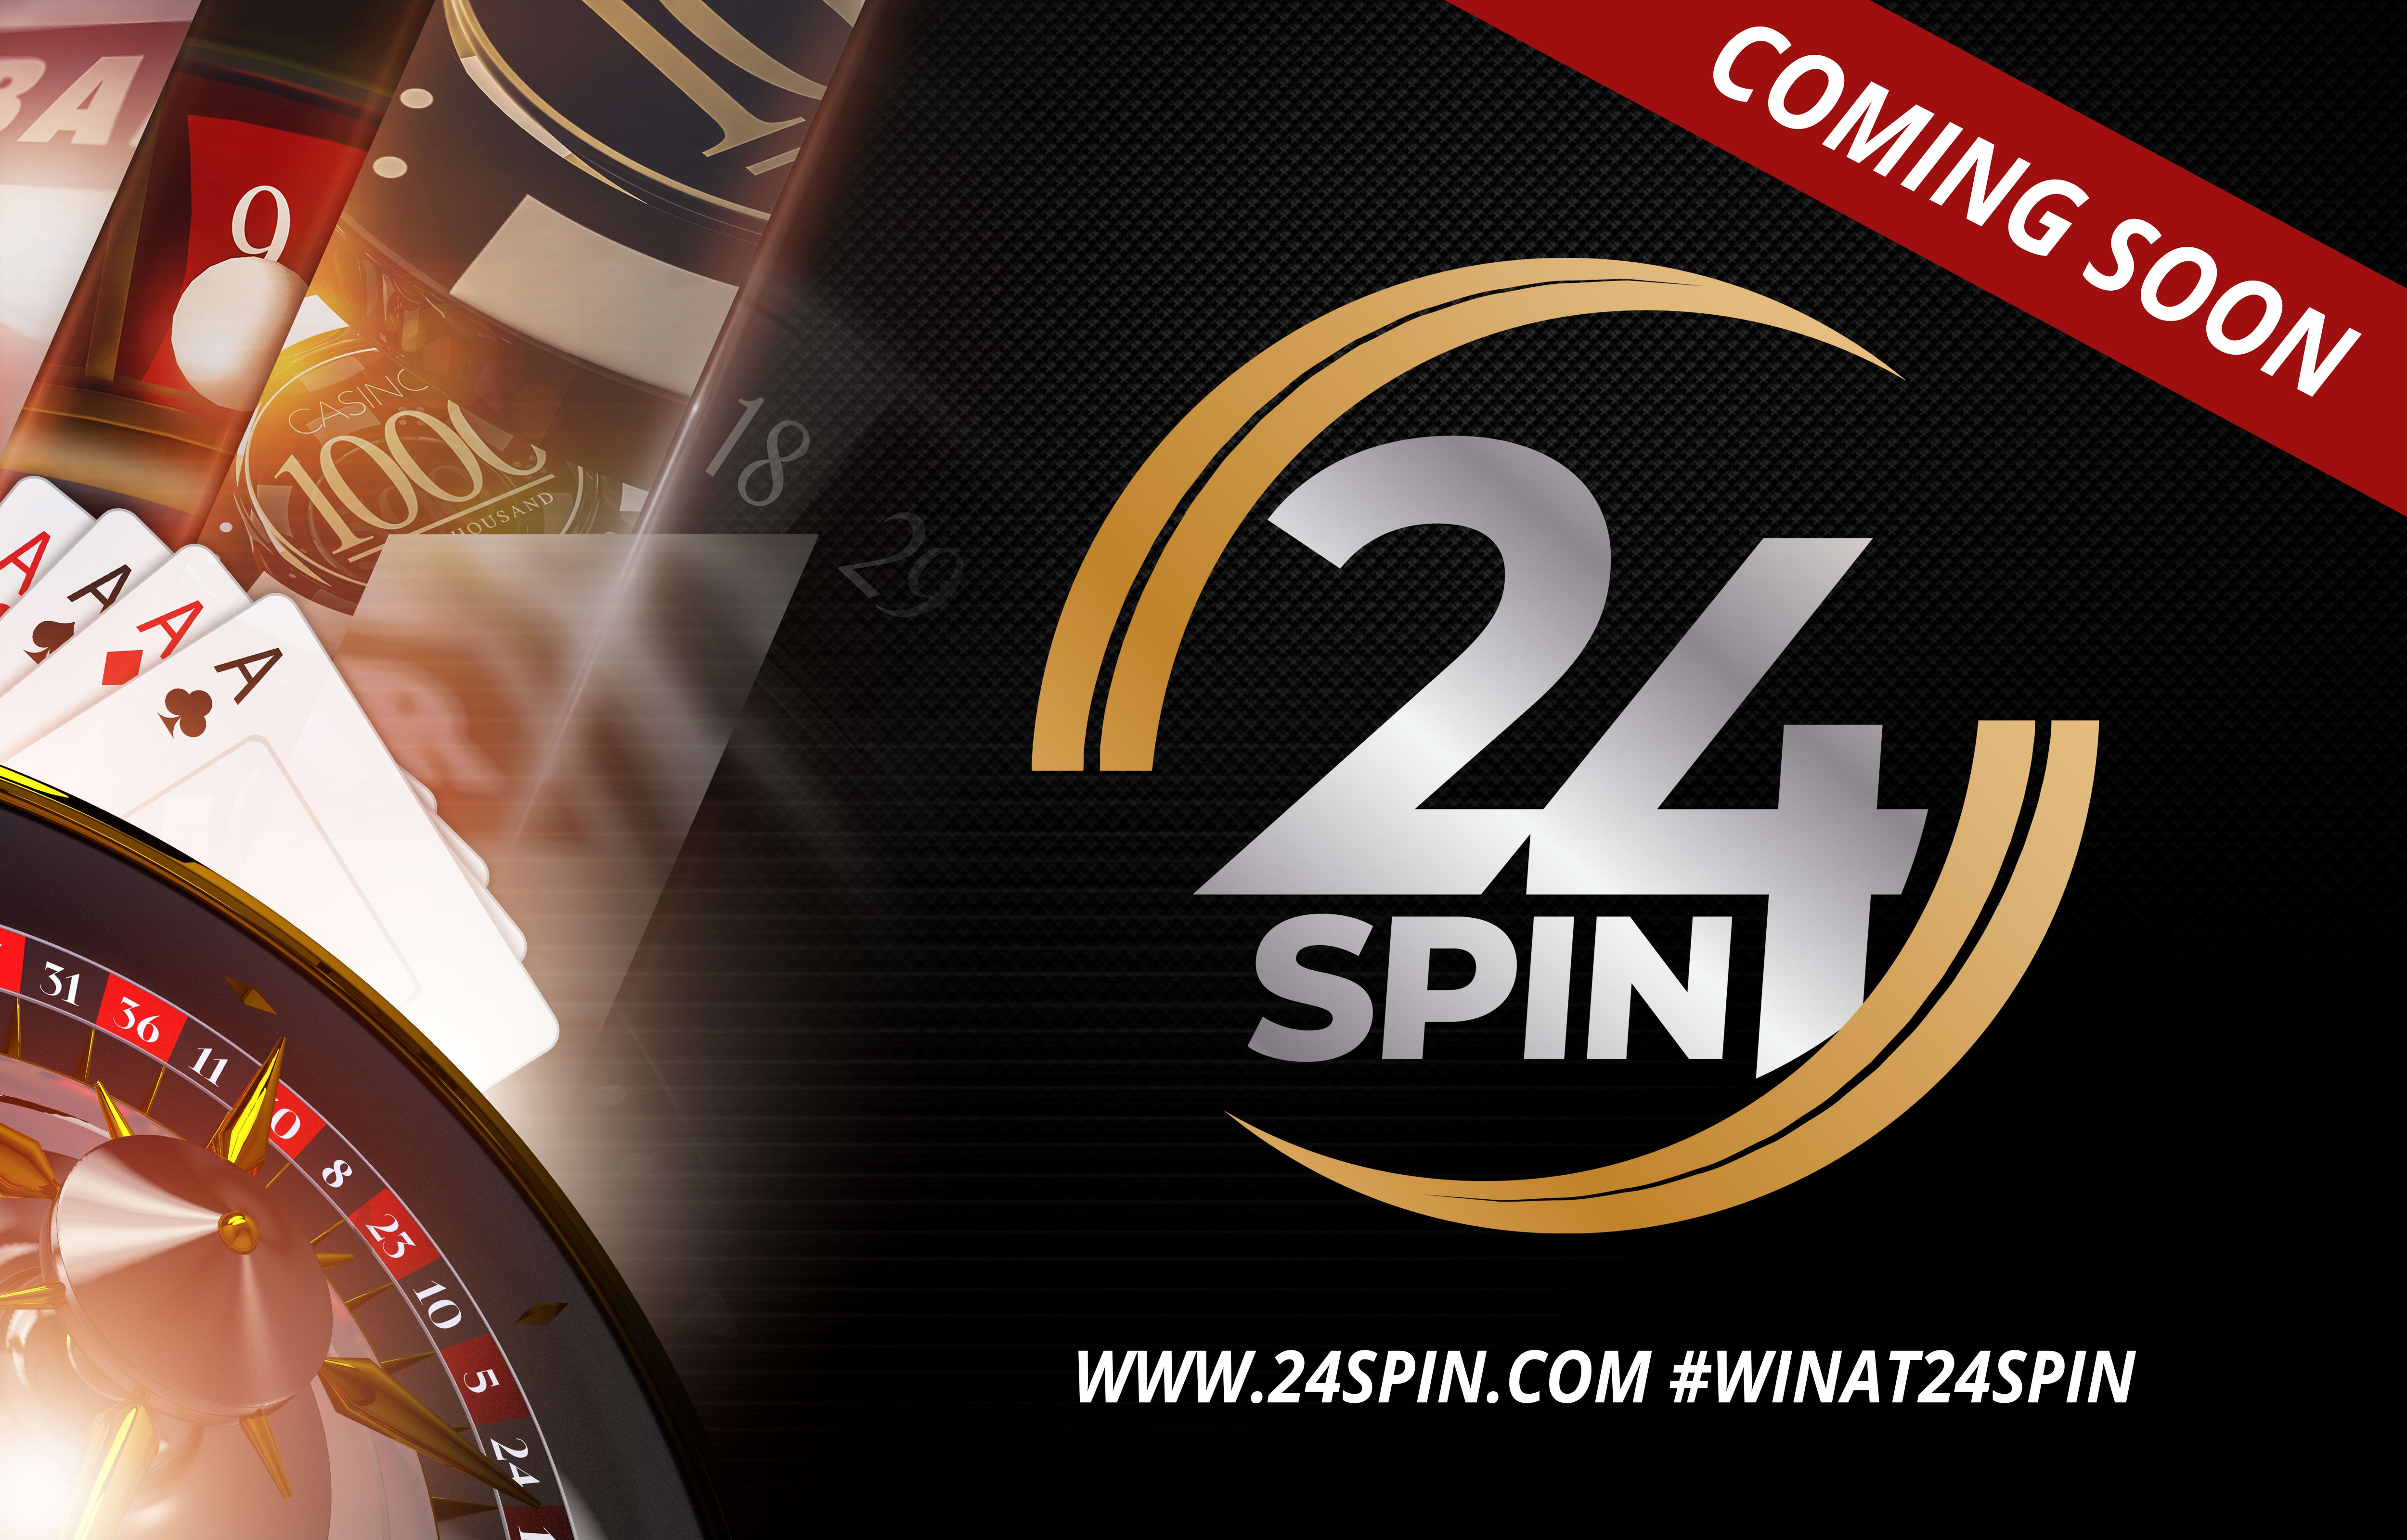 24spin coming soon